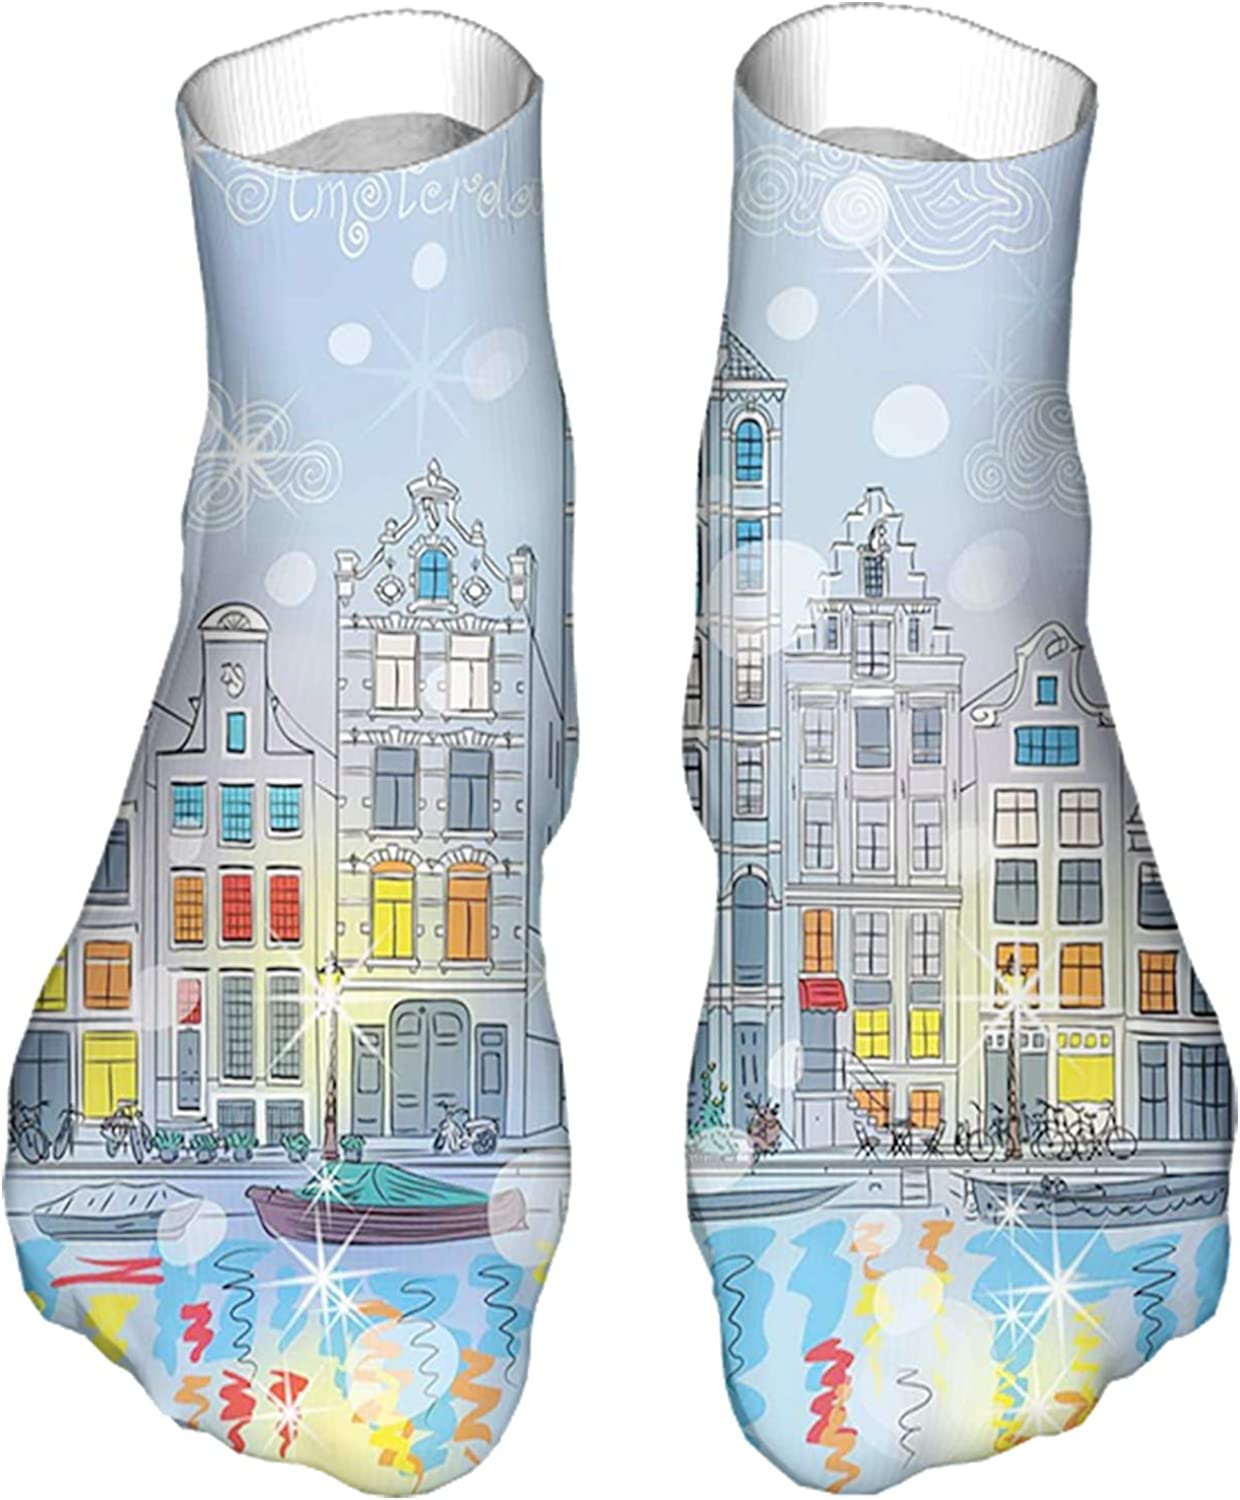 Men's and Women's Funny Casual Socks Noel Time at Amsterdam Canal with Historical Famous Building